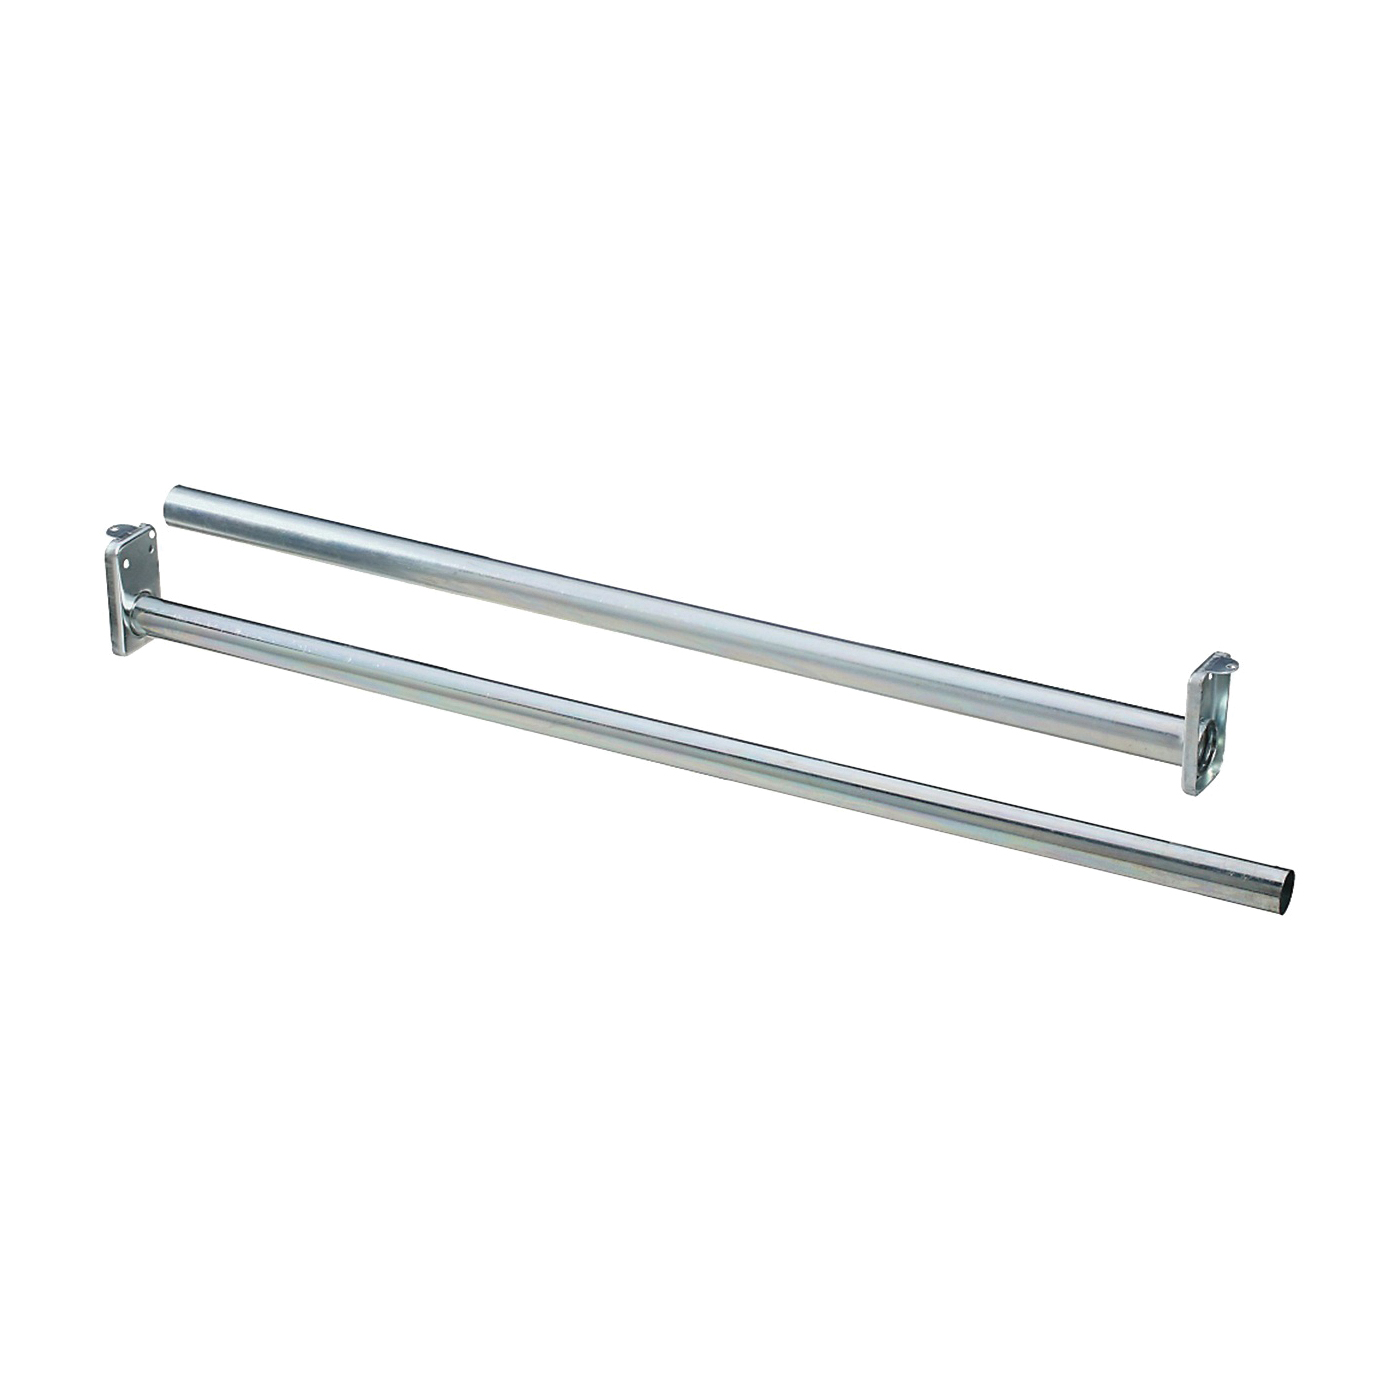 Picture of National Hardware DPV209 Series N338-327 Closet Rod, 48 to 72 in L, Steel, Bright